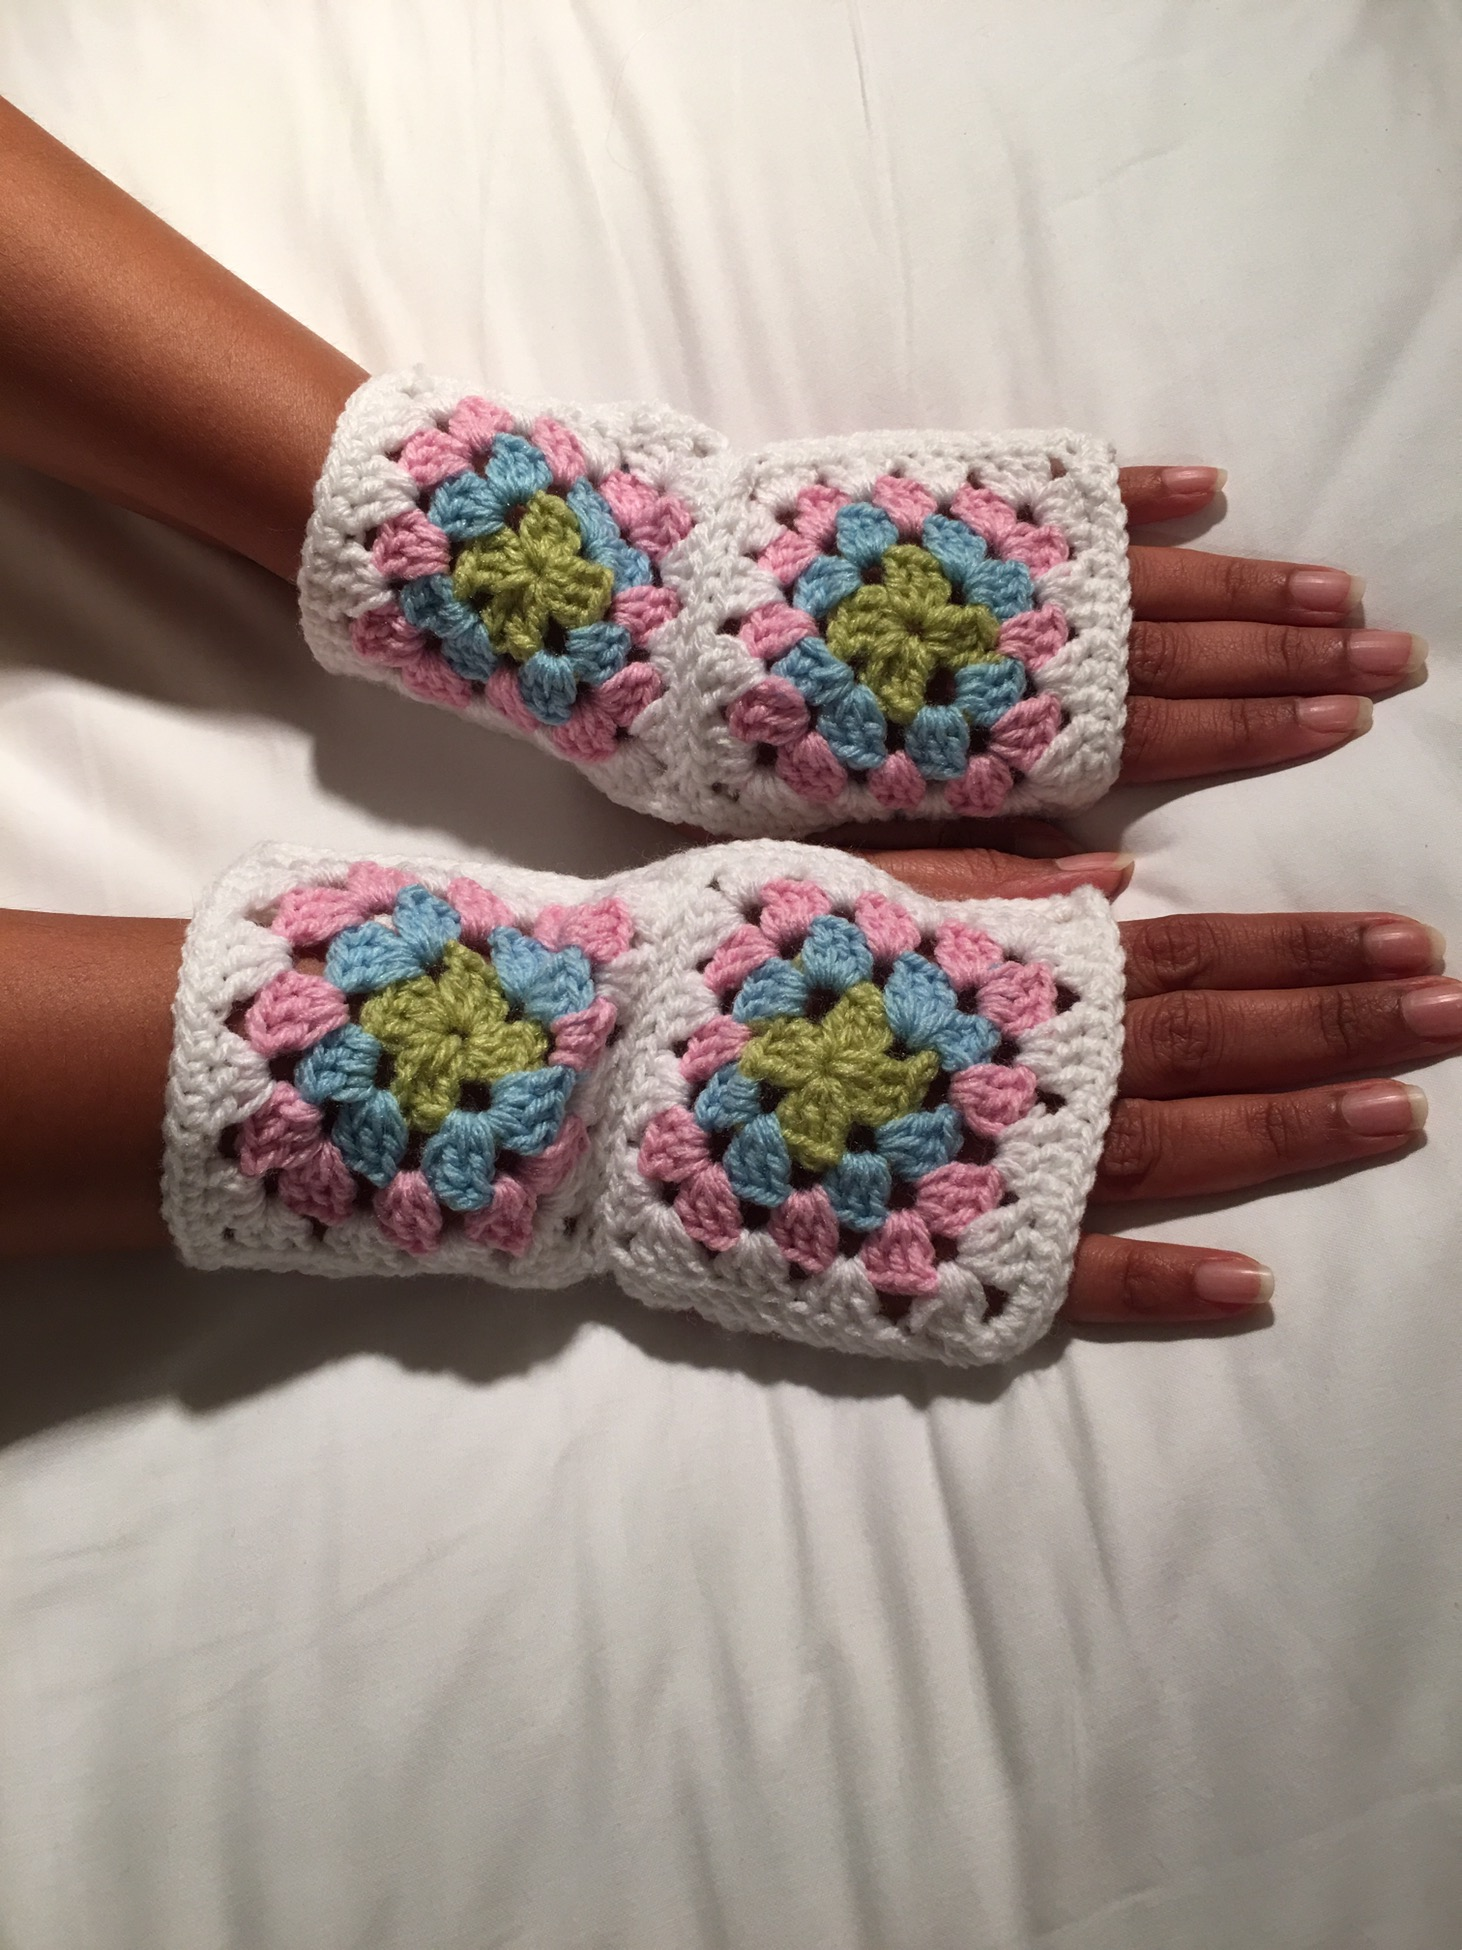 payal 's mittens